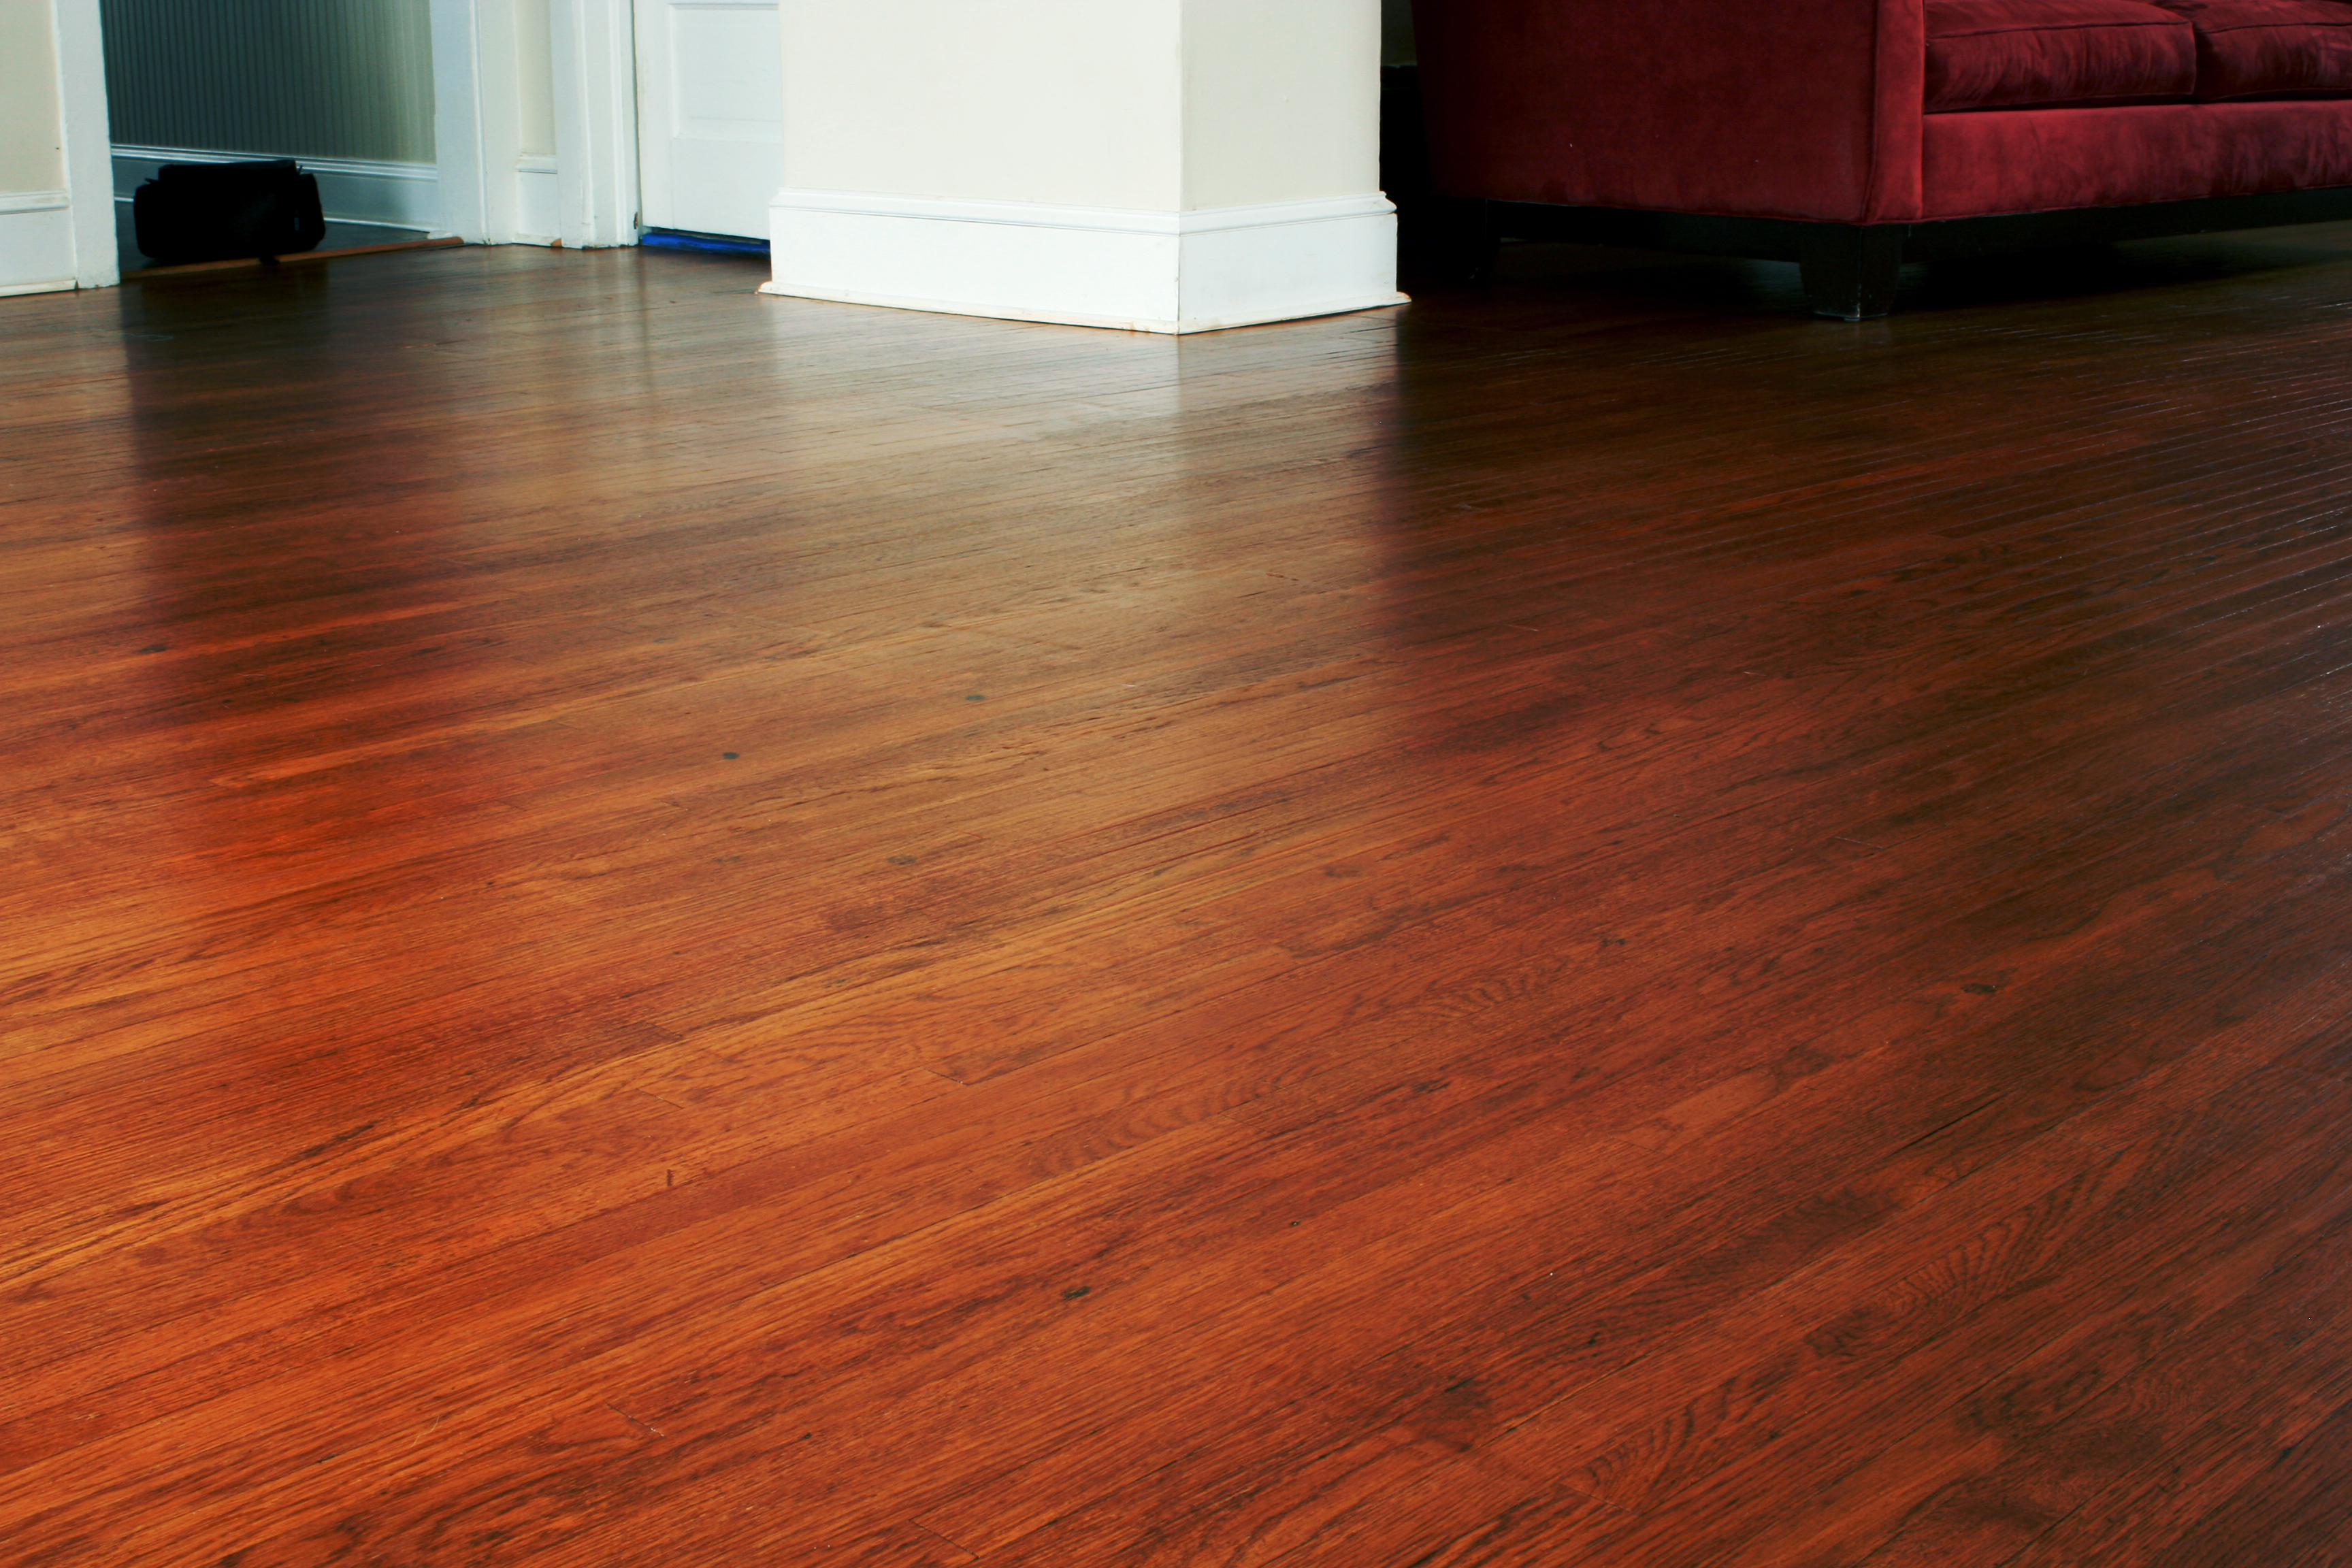 How to Diagnose and Repair Sloping Floors - HomeAdvisor